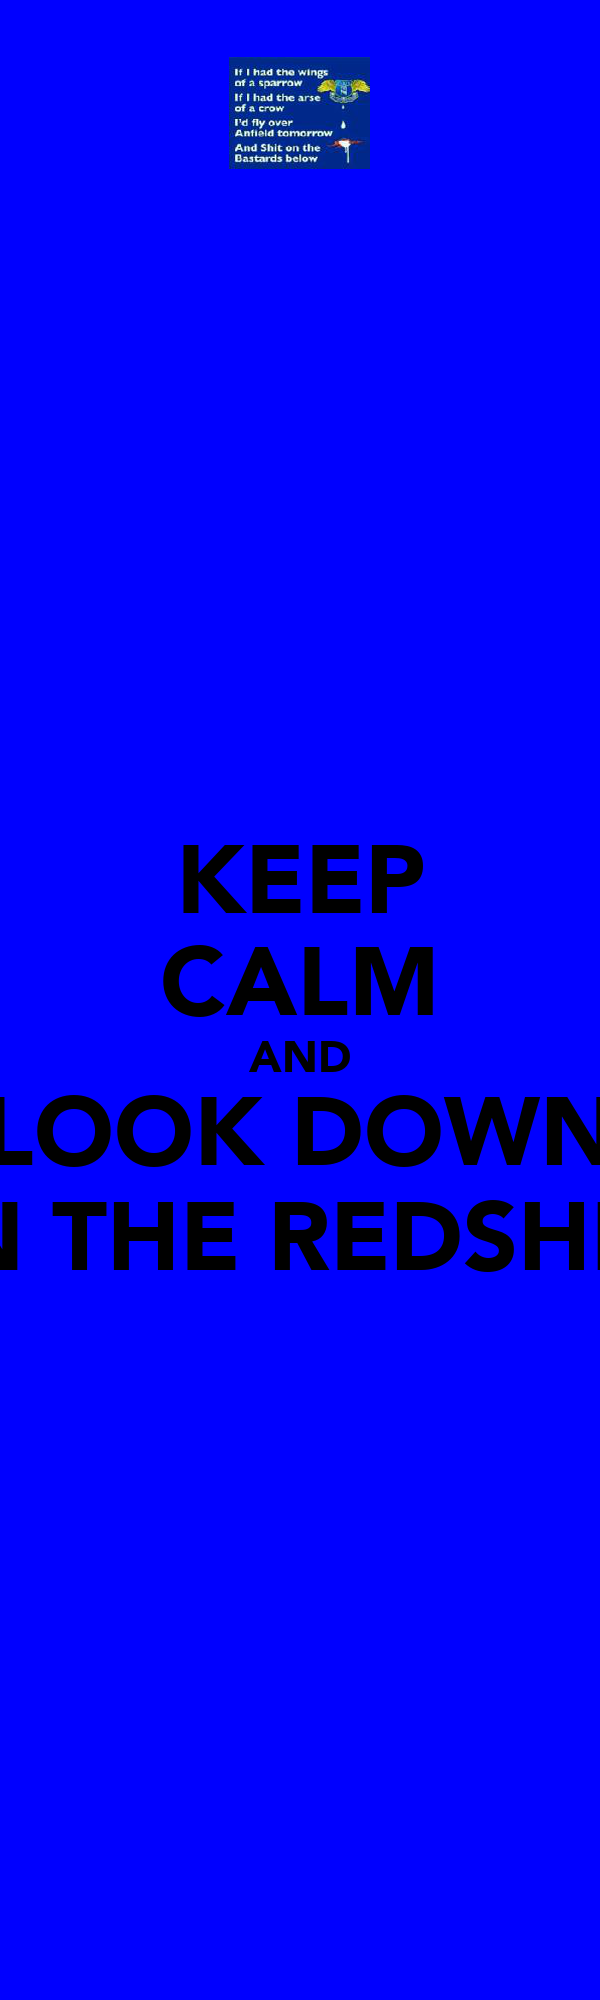 KEEP CALM AND LOOK DOWN ON THE REDSHITE